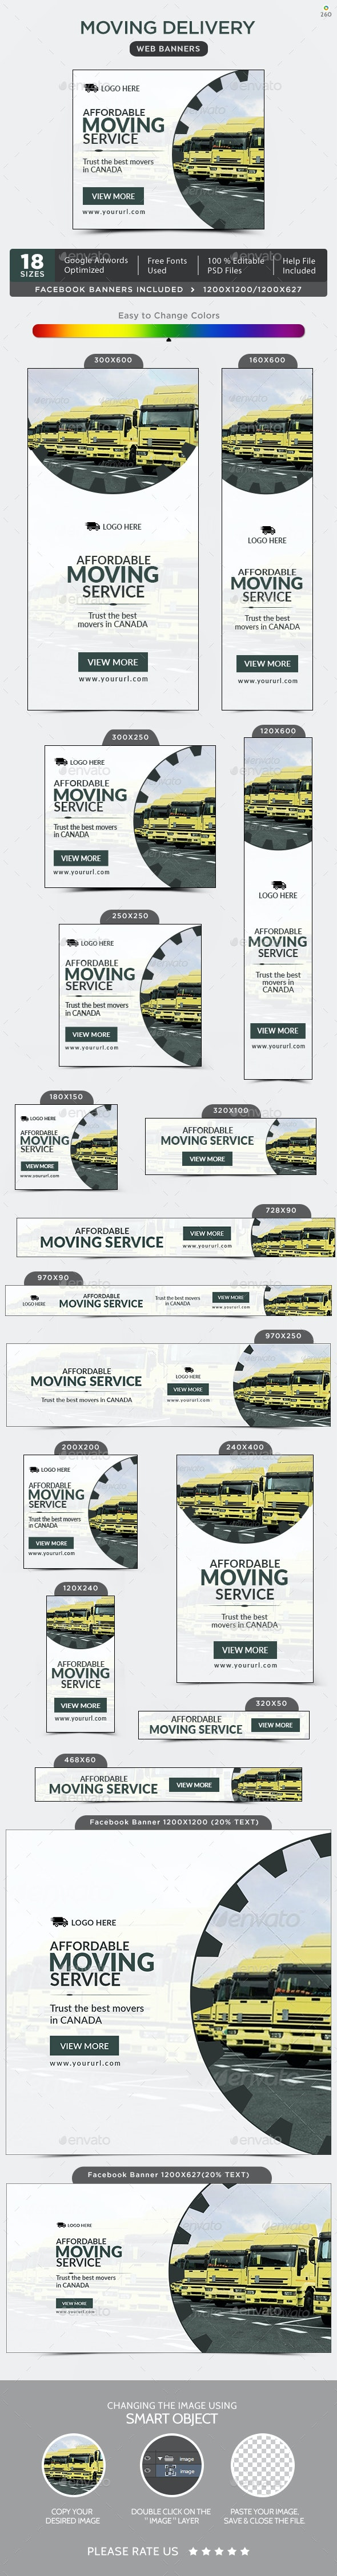 Moving Delivery Banners - Banners & Ads Web Elements